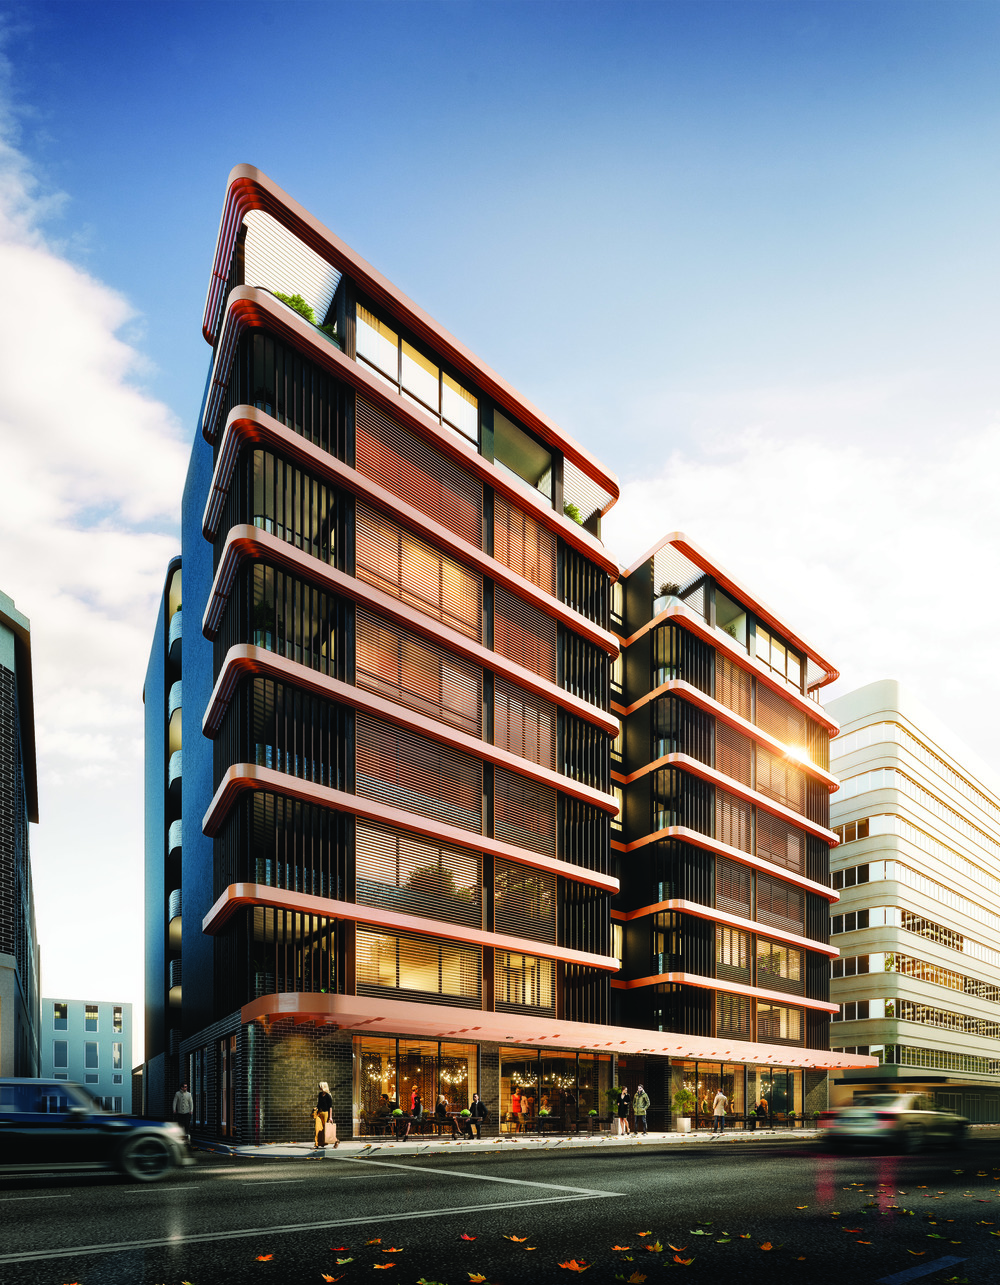 The facade and ground floor retail space at Golf House Residences, Surry Hills